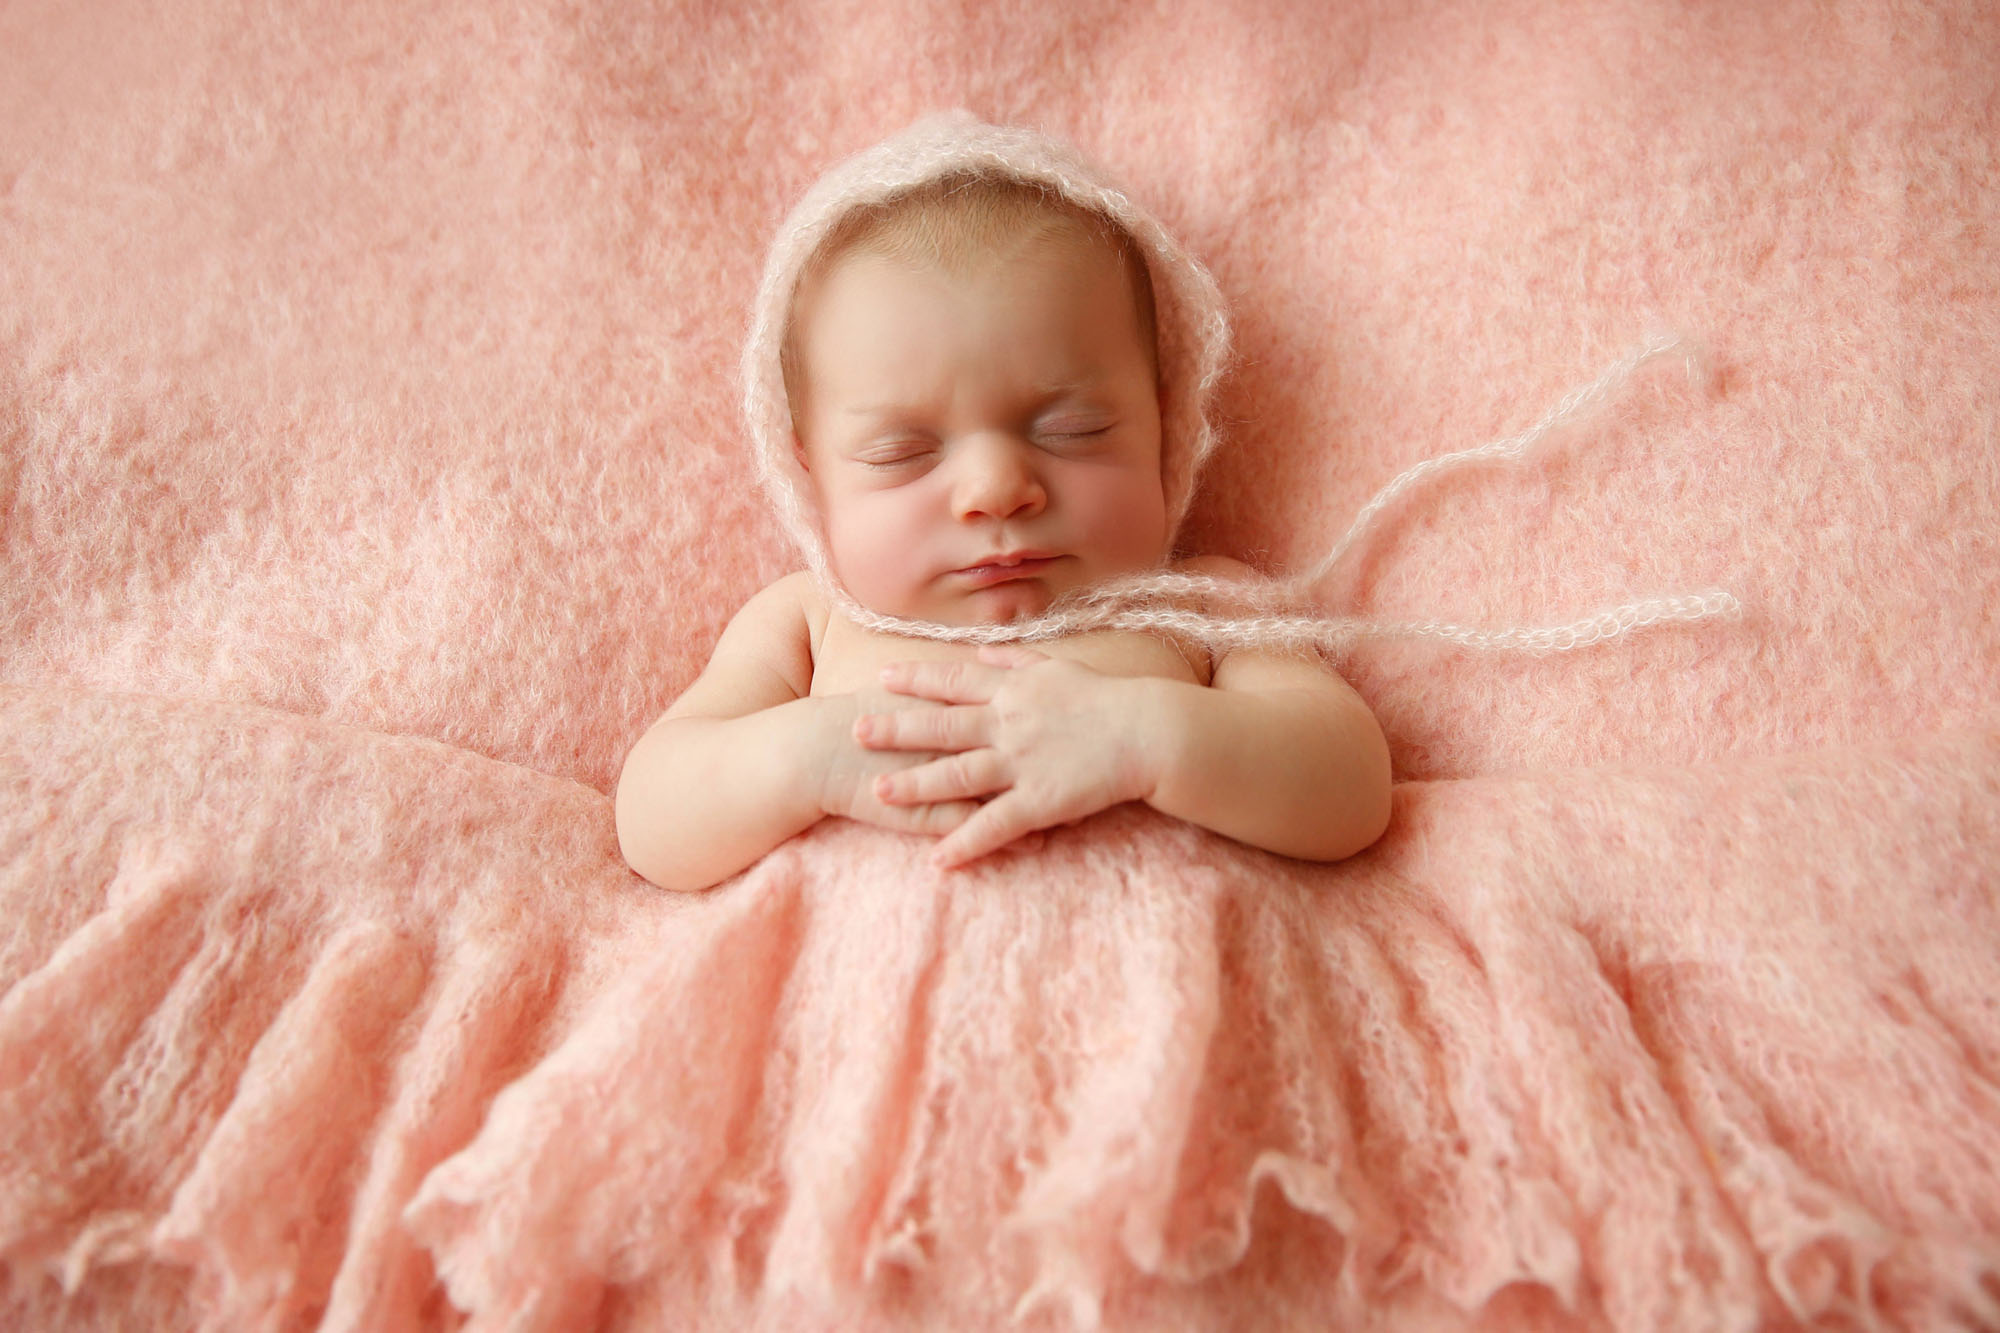 newborn-photography-berkshire-hampshire-31.jpg